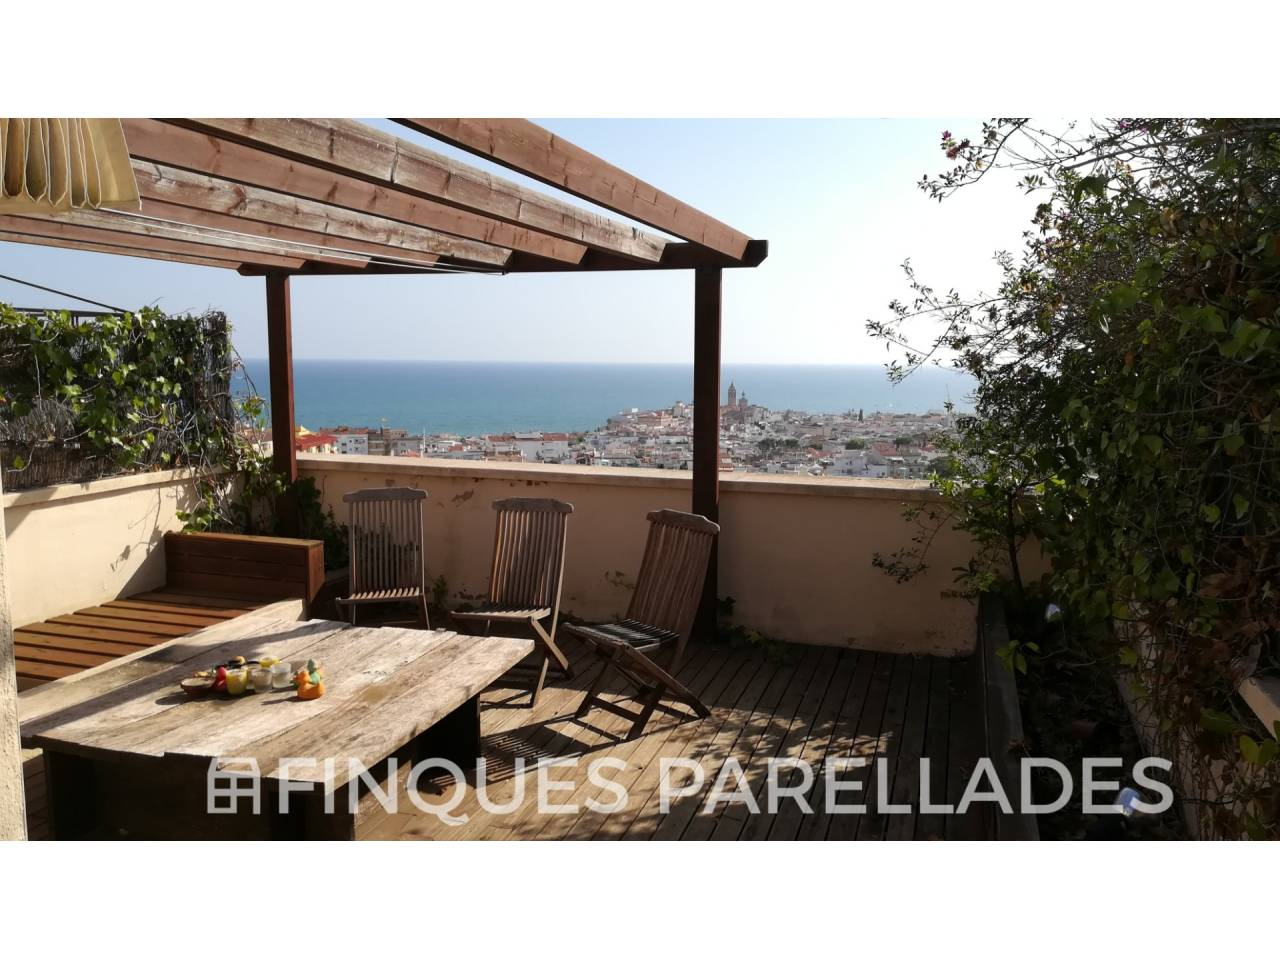 Penthouse with beautiful views of Sitges and near the center. parking and storage